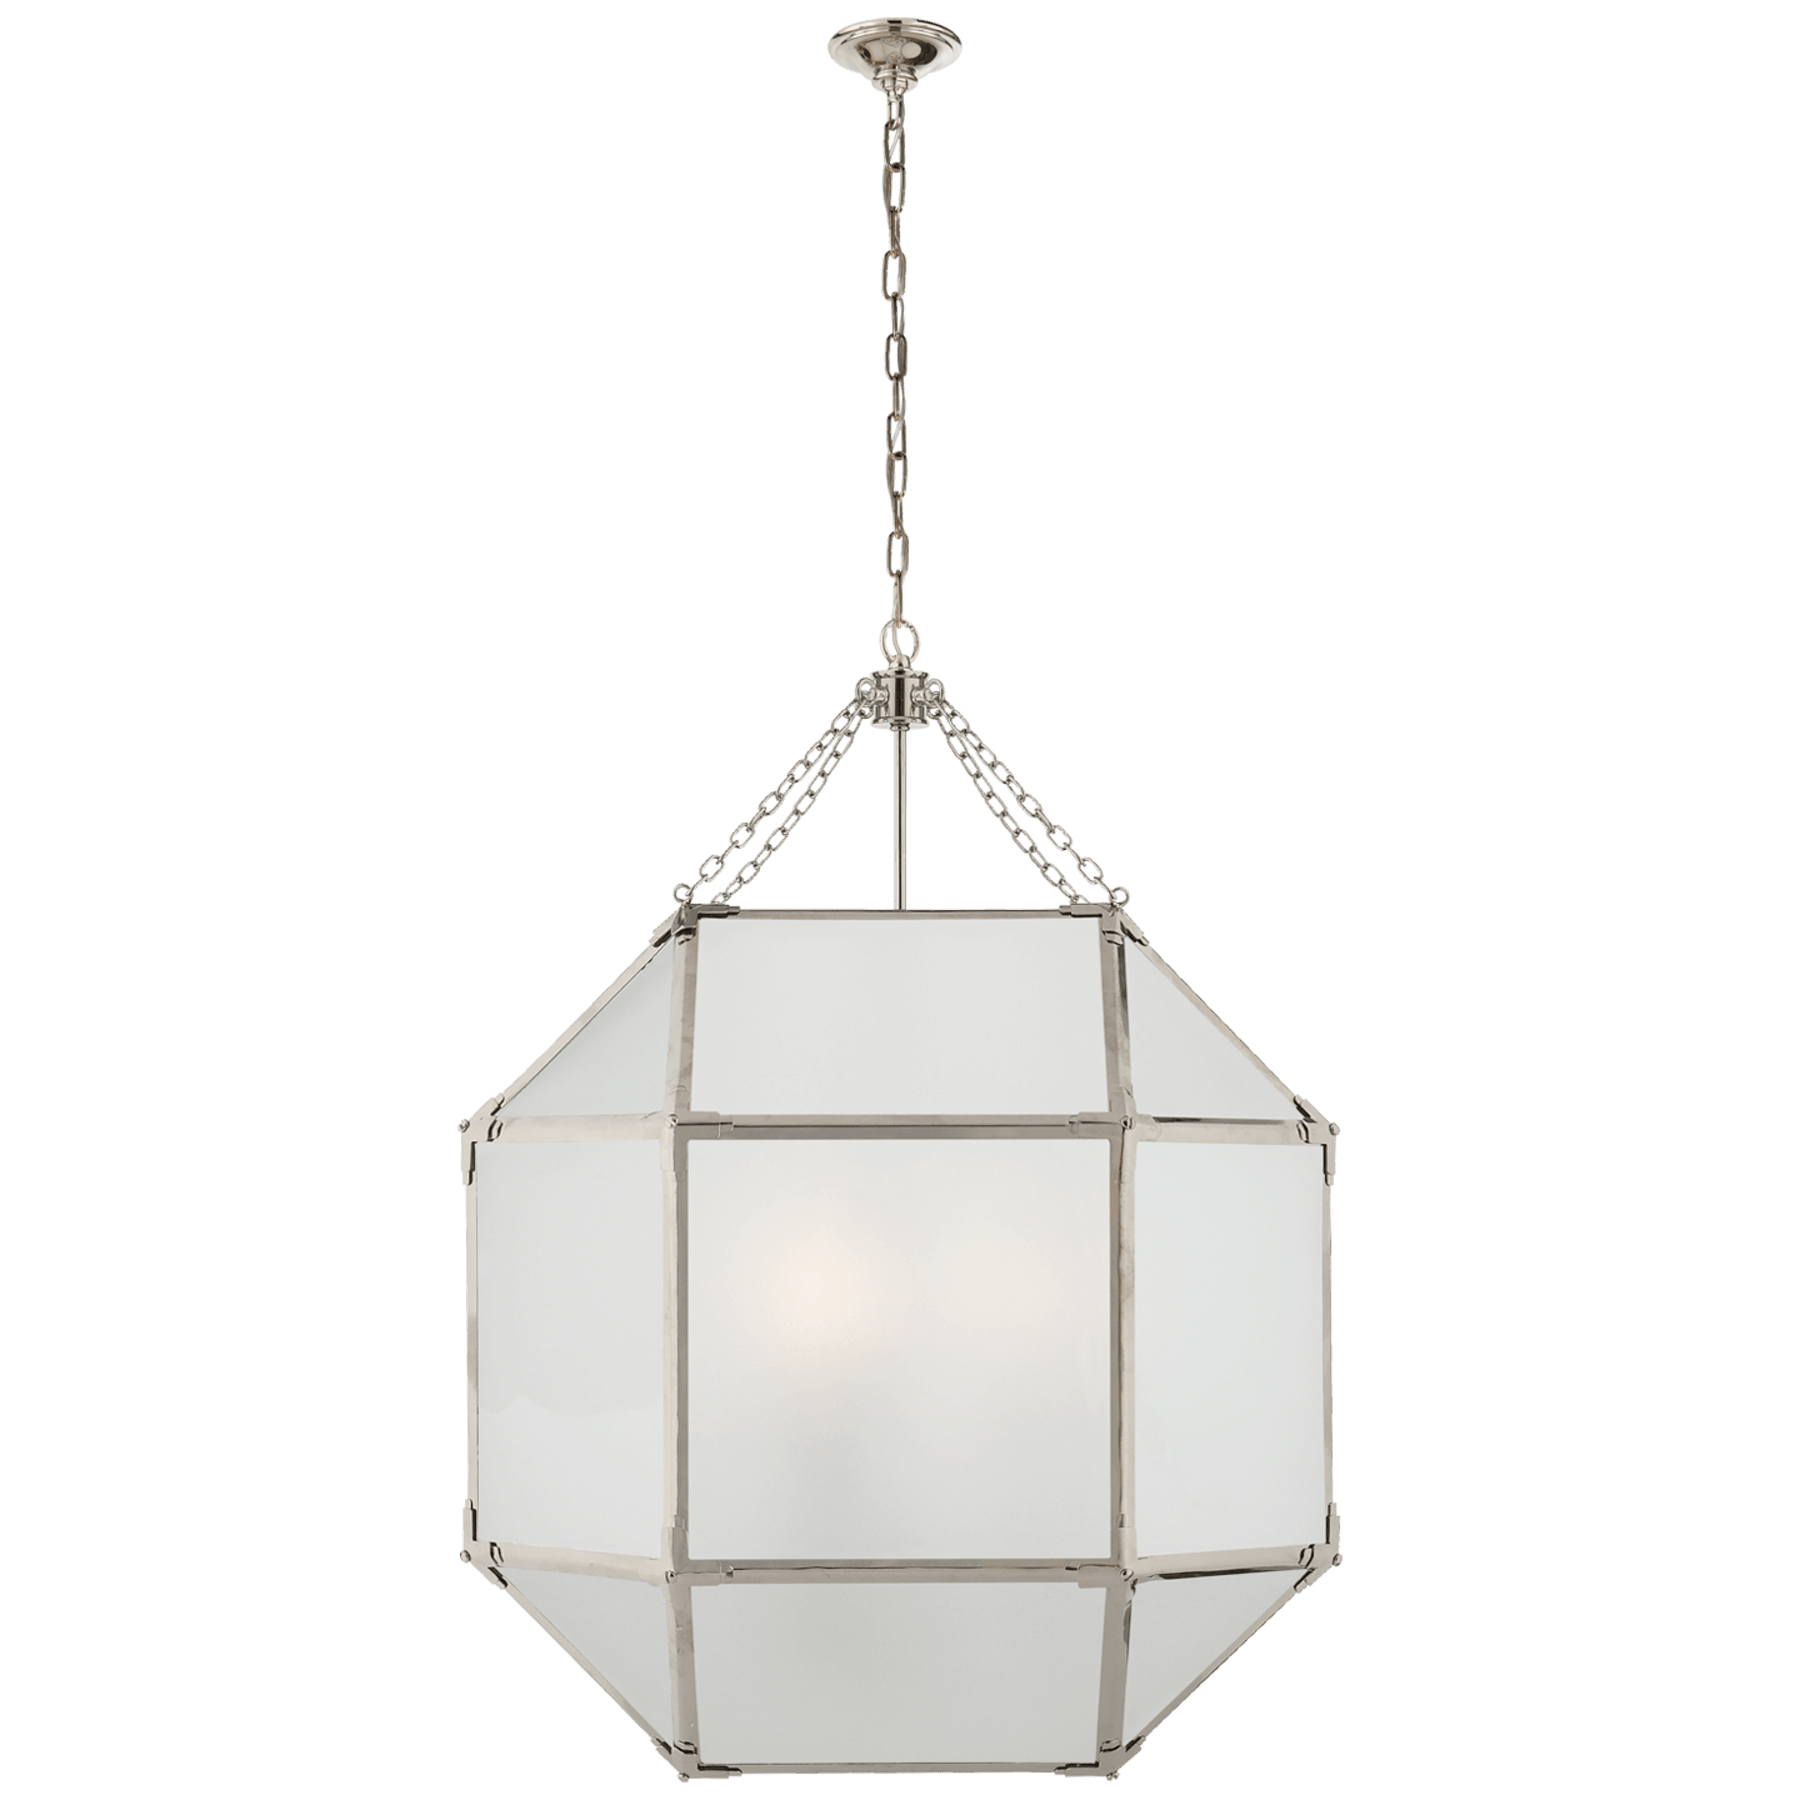 Morris Large Lantern Circa Lighting